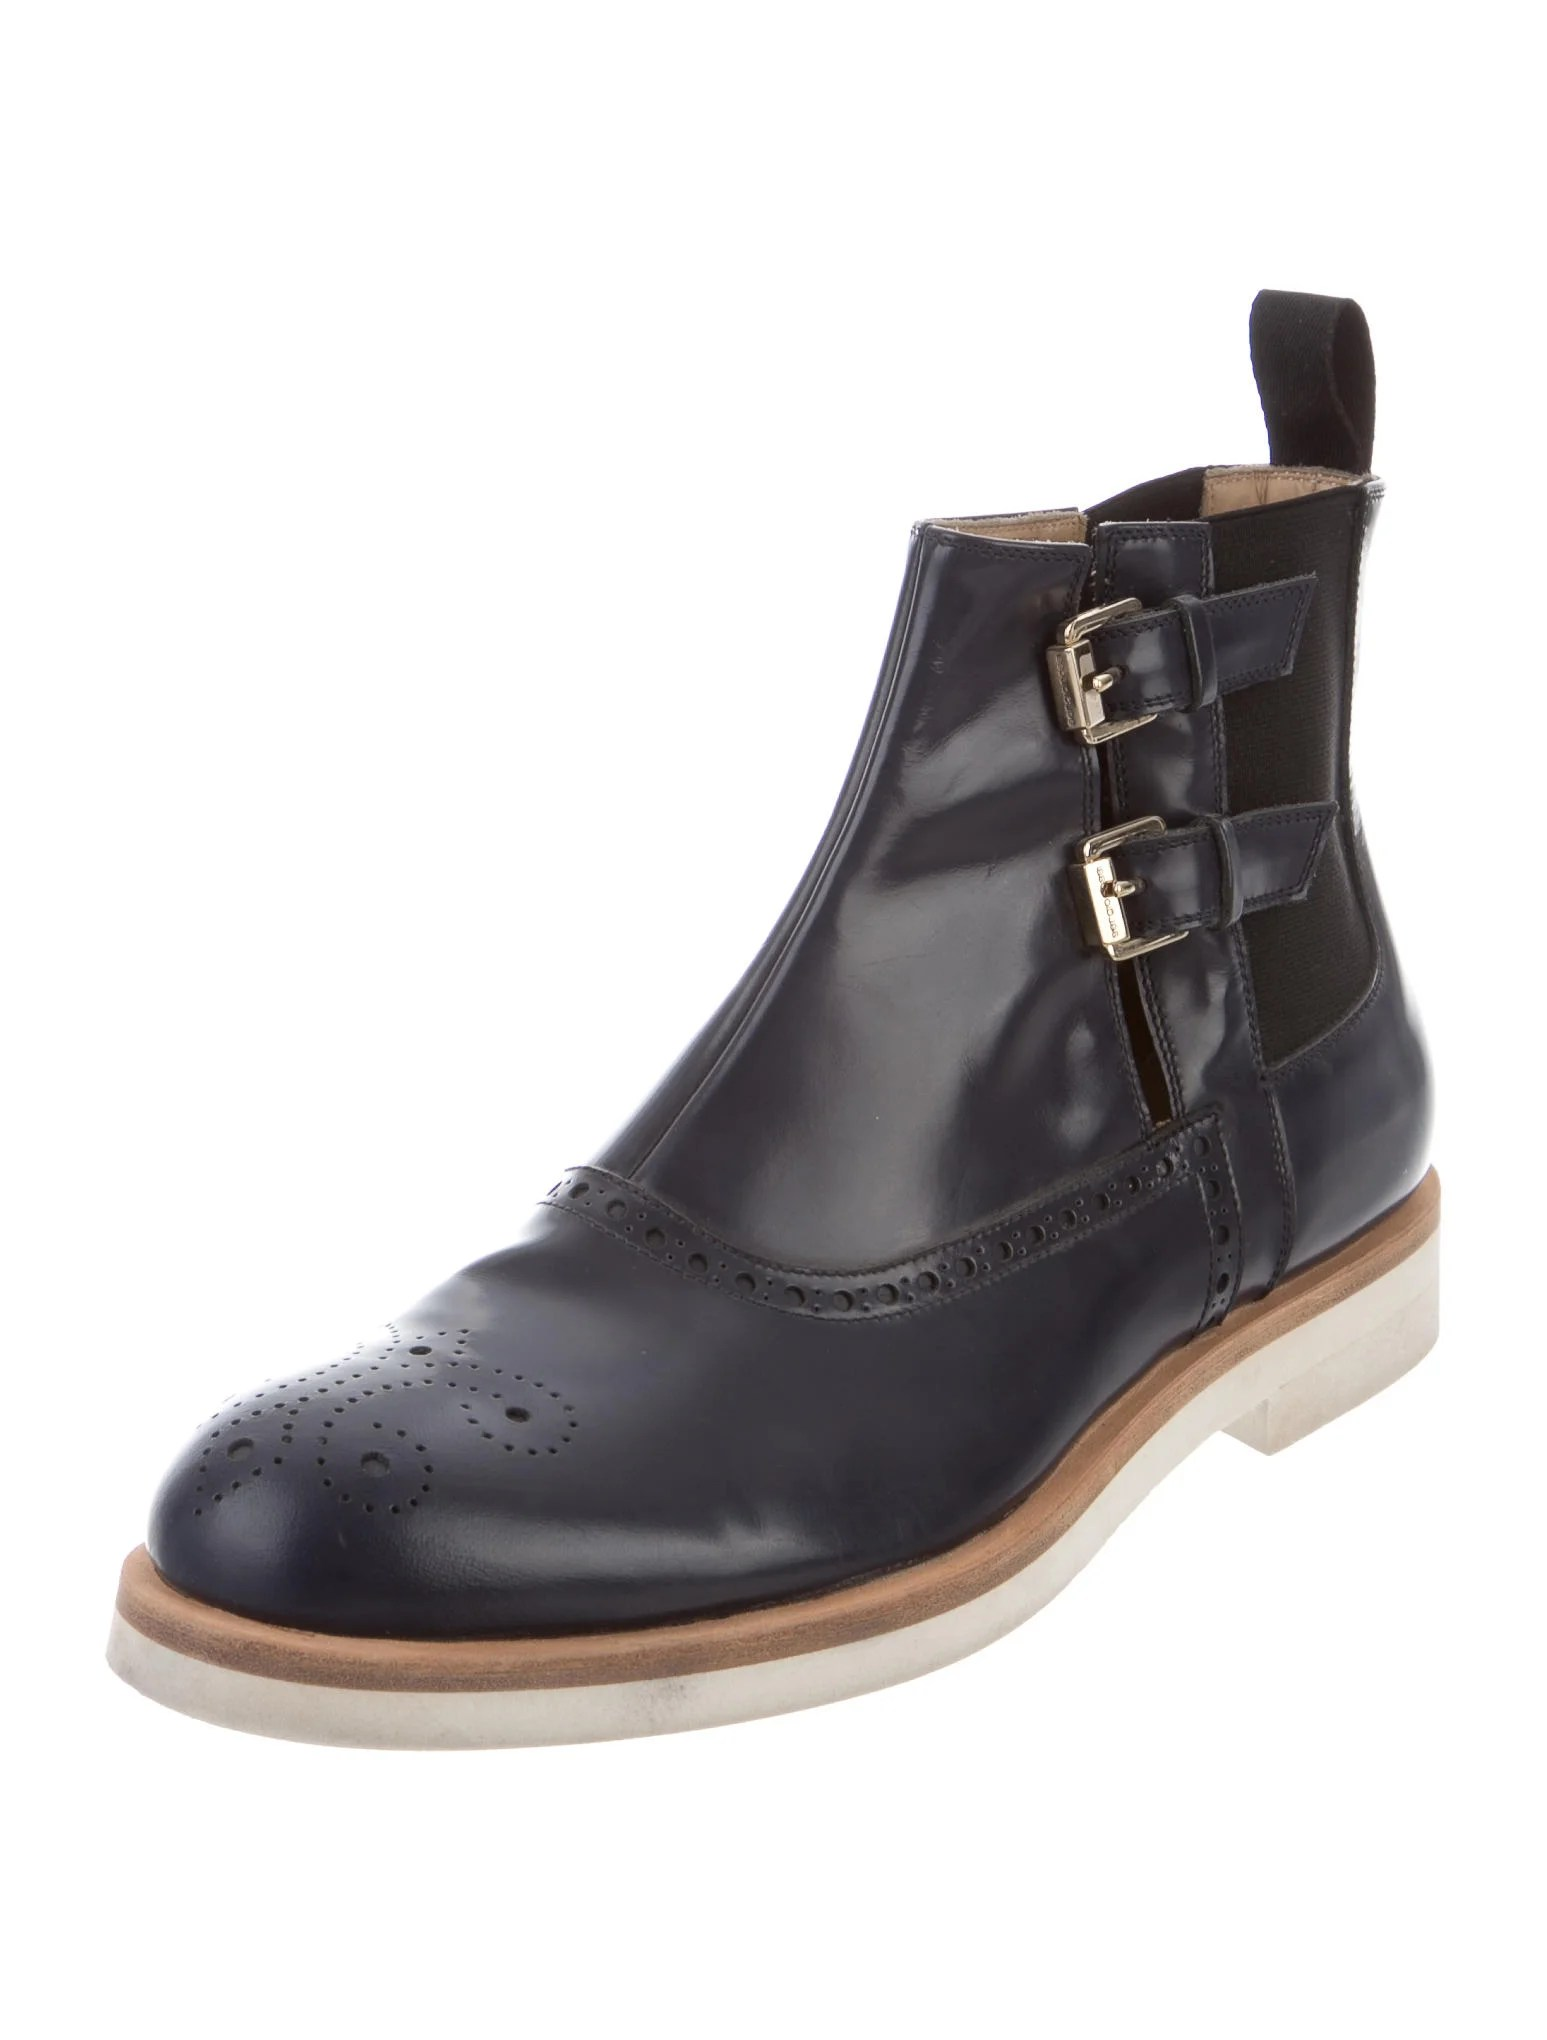 Sergio Rossi Leather Chelsea Boots Shoes Ser28340